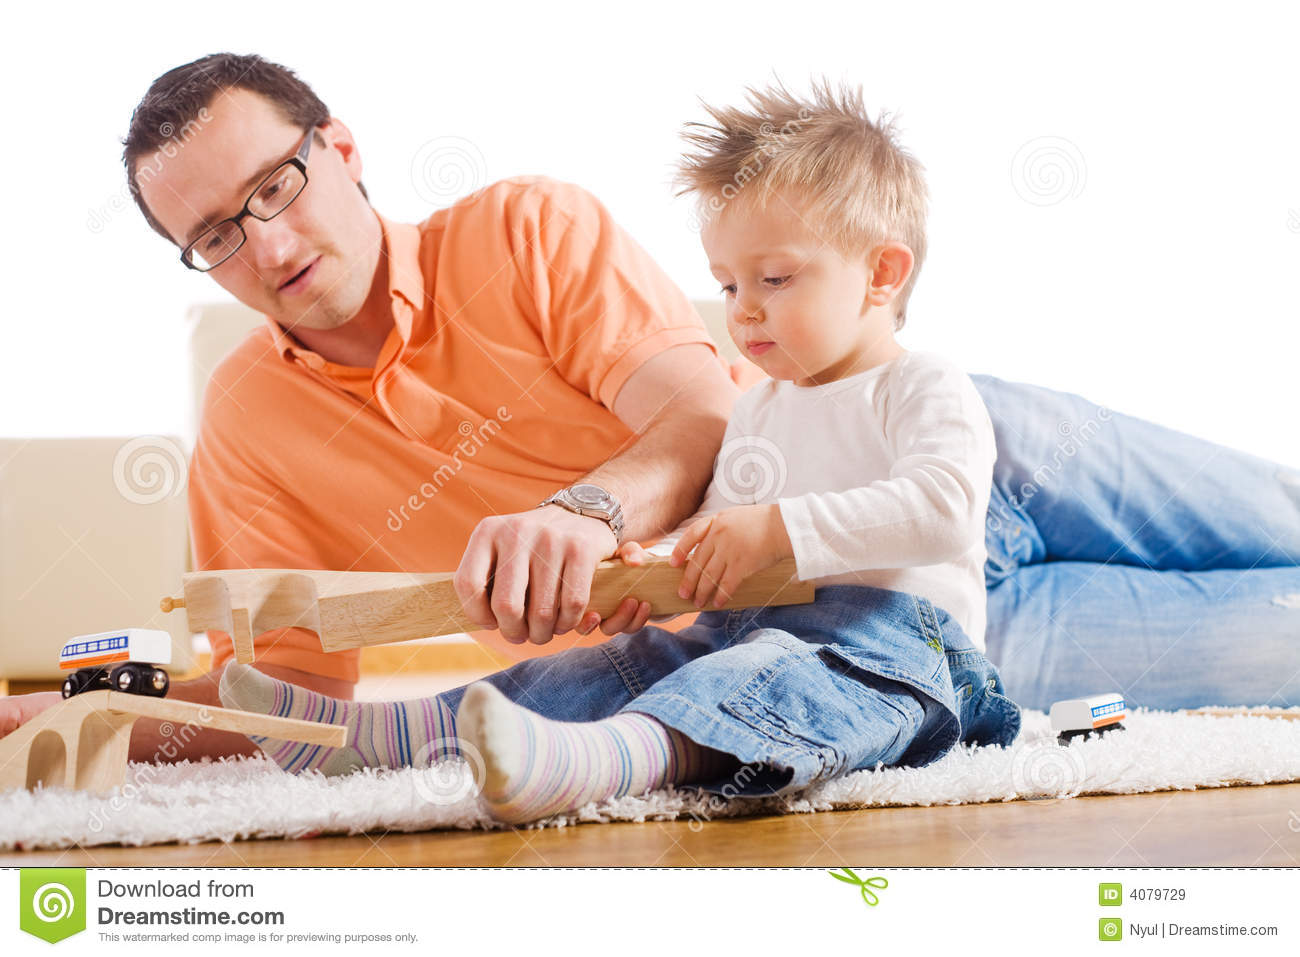 a child is the father of Fathers rights advocates, father rights help, fathers rights attorney, how to get child custody, fathers joint custody, sole custody.